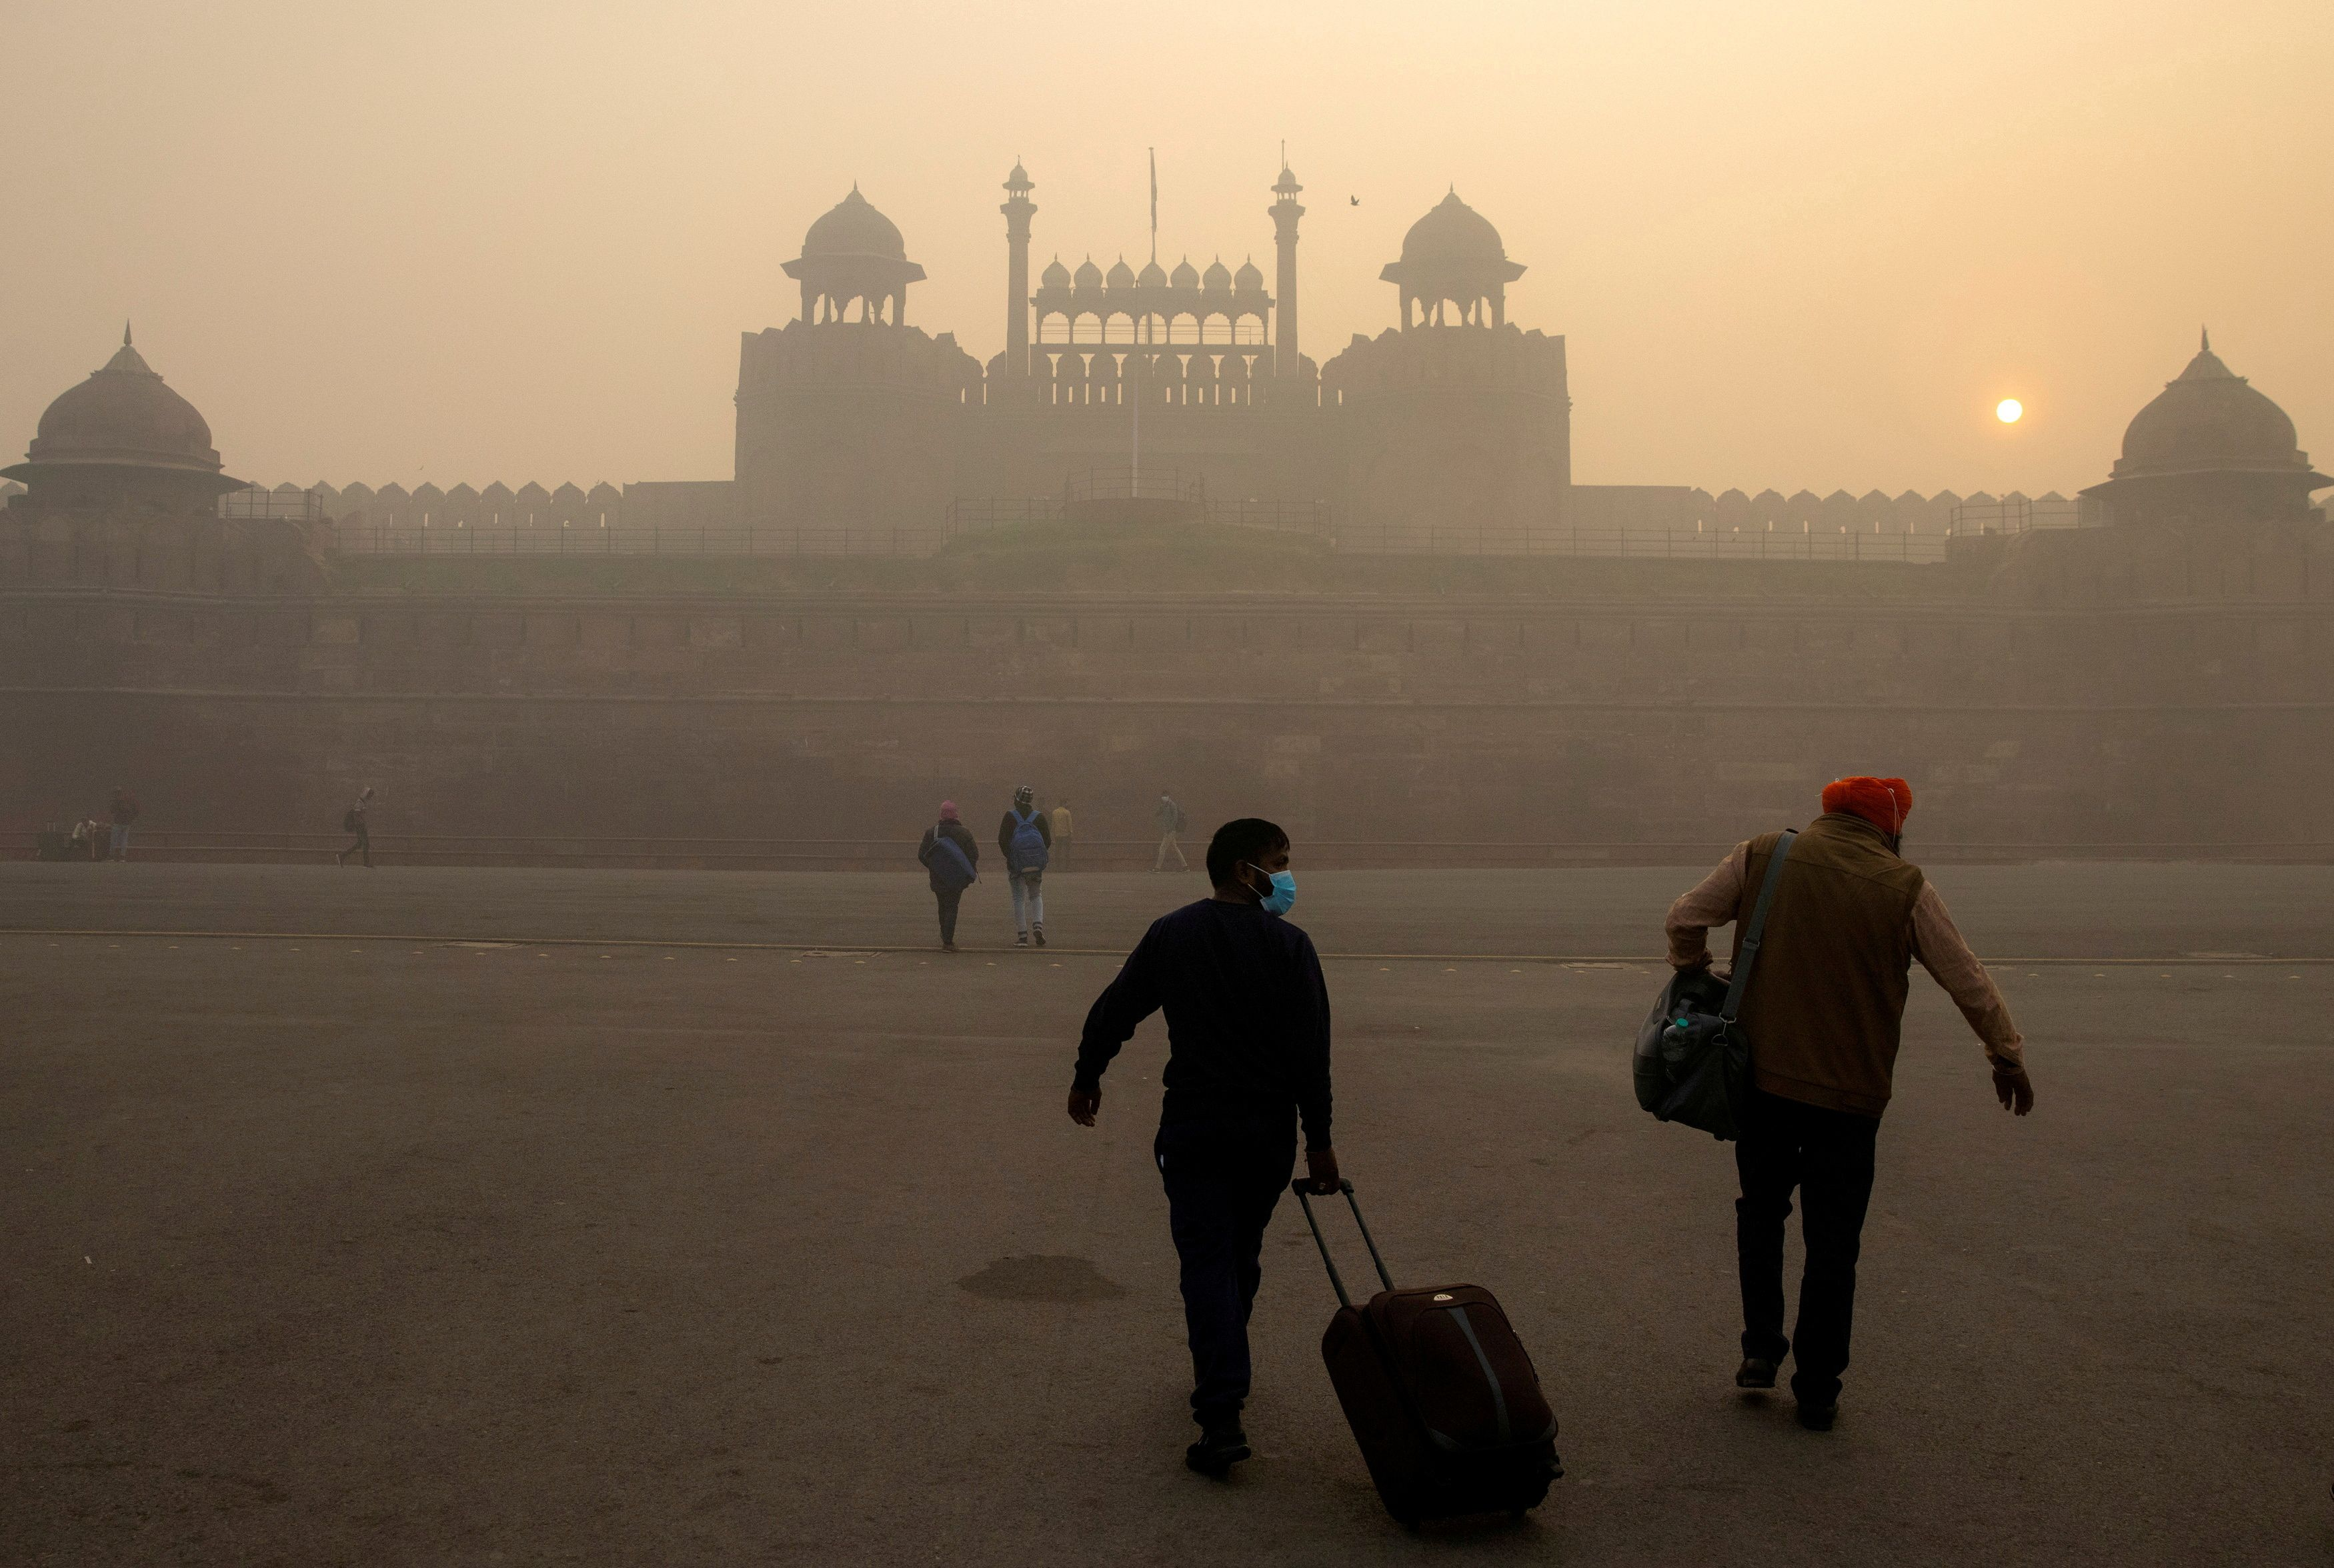 People arrive to visit the Red Fort on a smoggy morning in the old quarters of Delhi, India, November 10, 2020. REUTERS/Danish Siddiqui